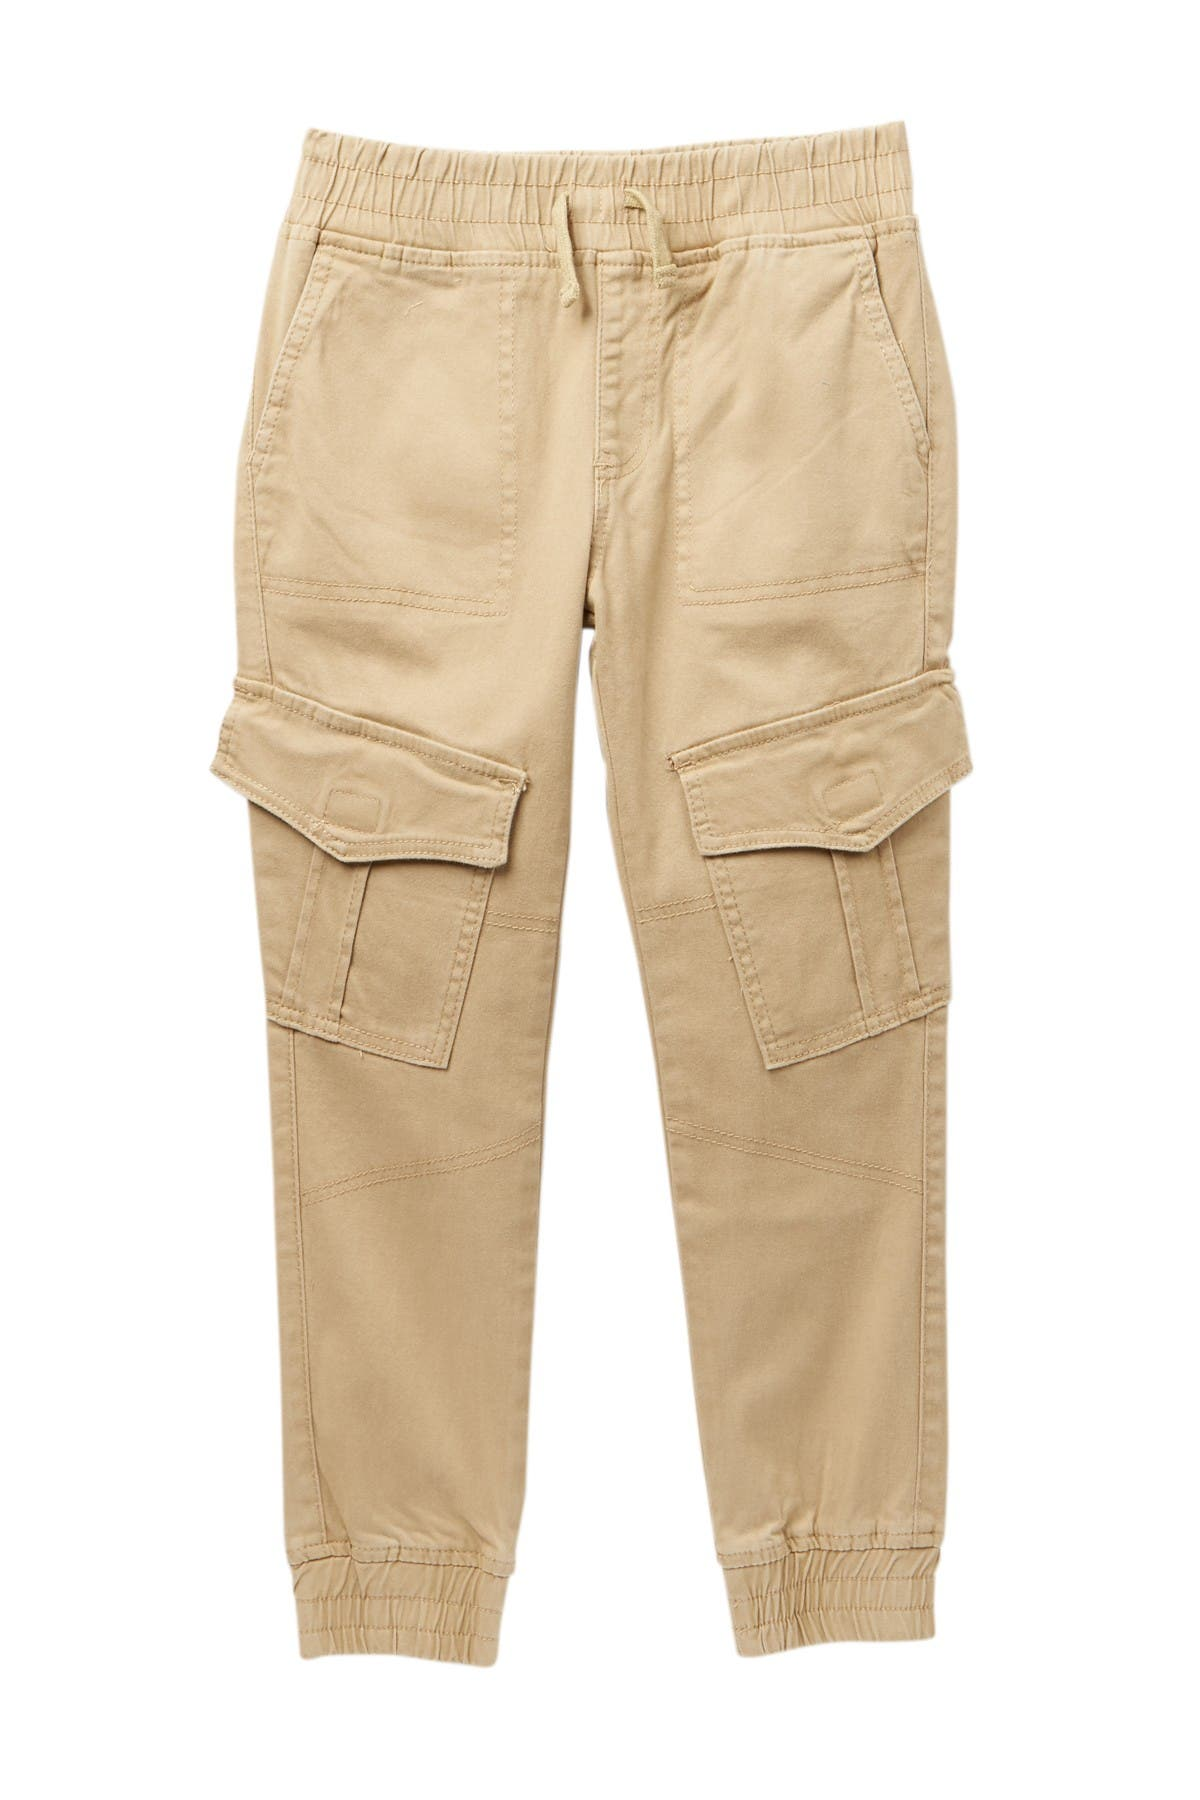 Image of Joe's Jeans Stretch Twill Jogger Pants